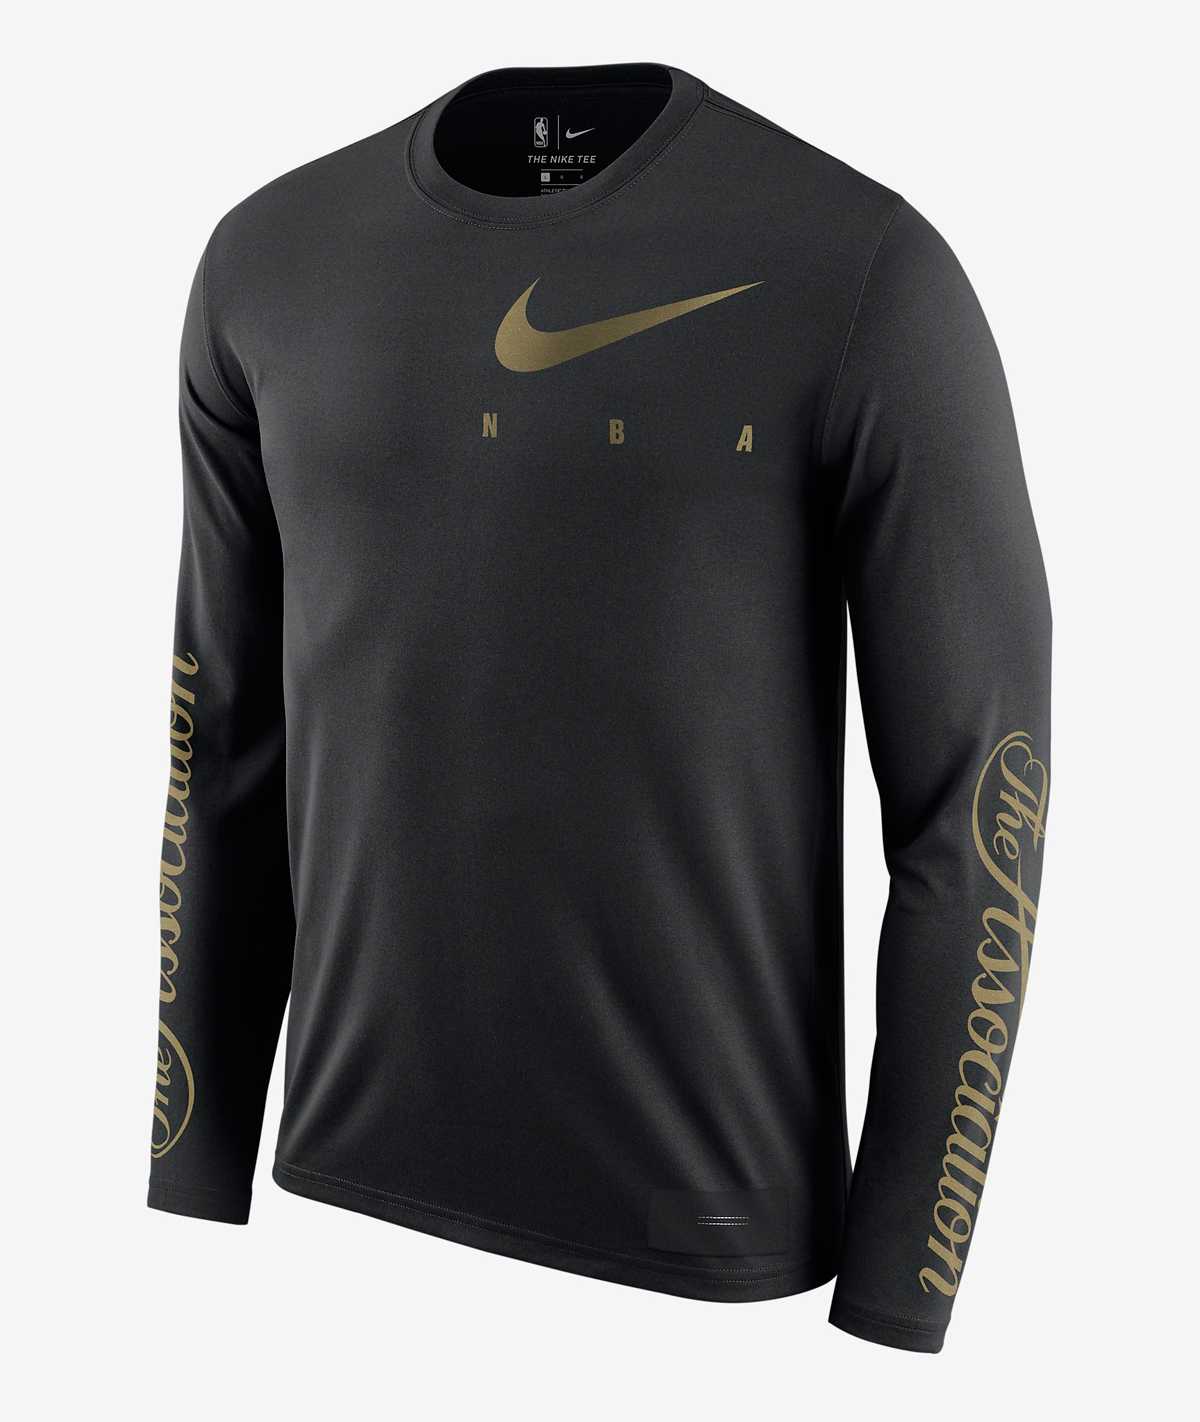 nike-nba-finals-association-long-sleeve-shirt-1